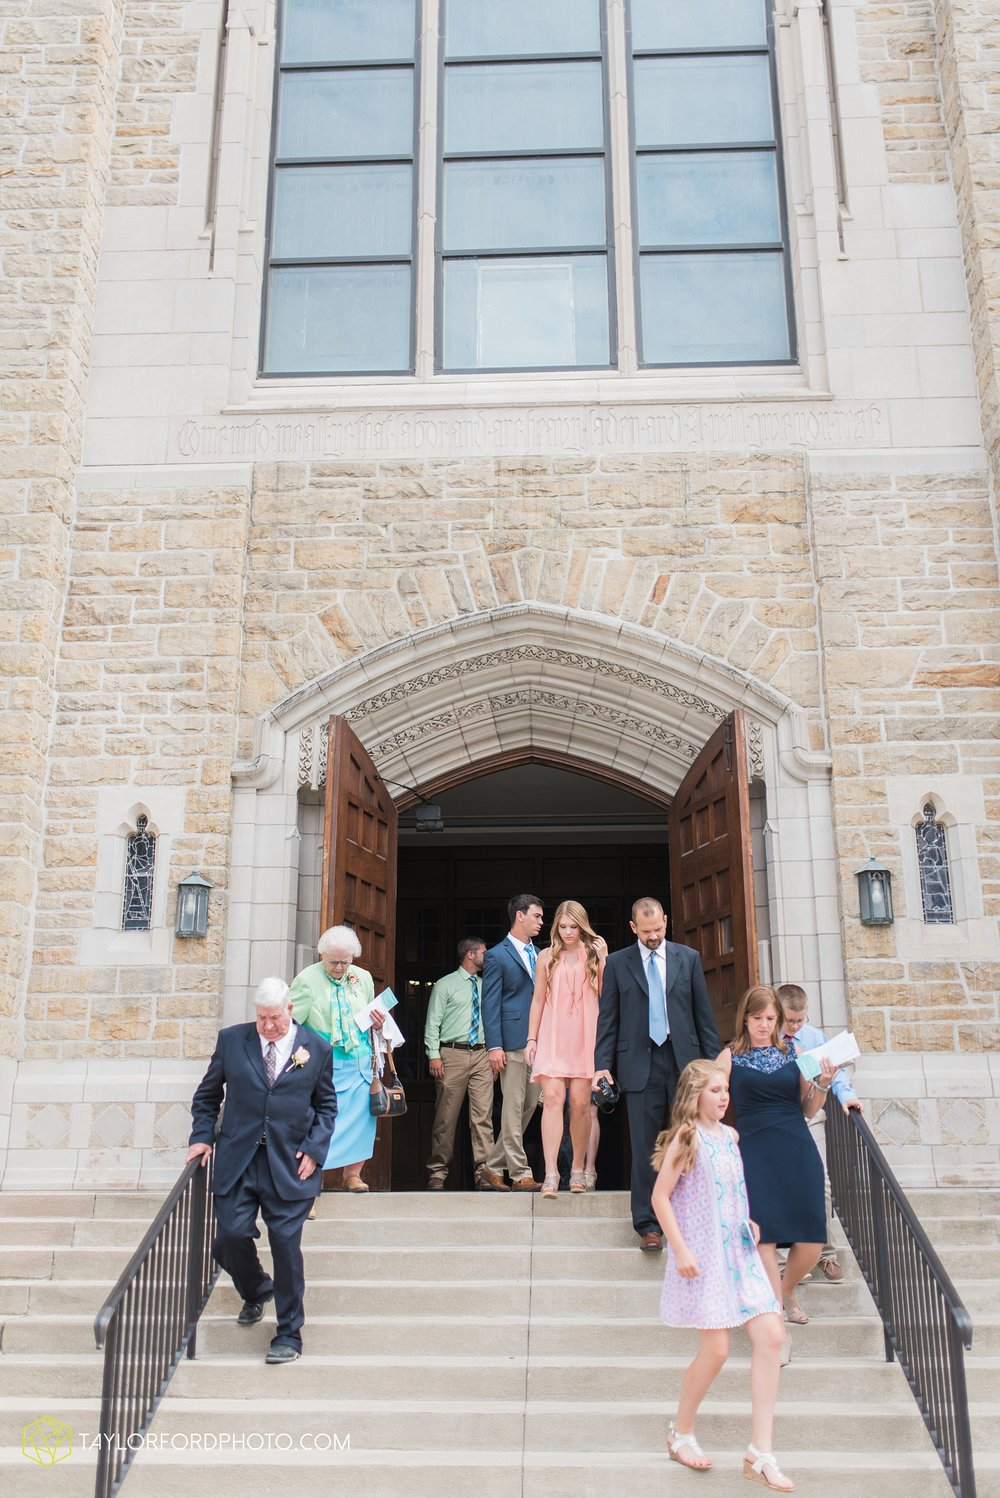 ford-wayne-indiana-trinity-lutheran-church-becca-connor-bonnell-taylor-ford-wedding-photography_0045.jpg